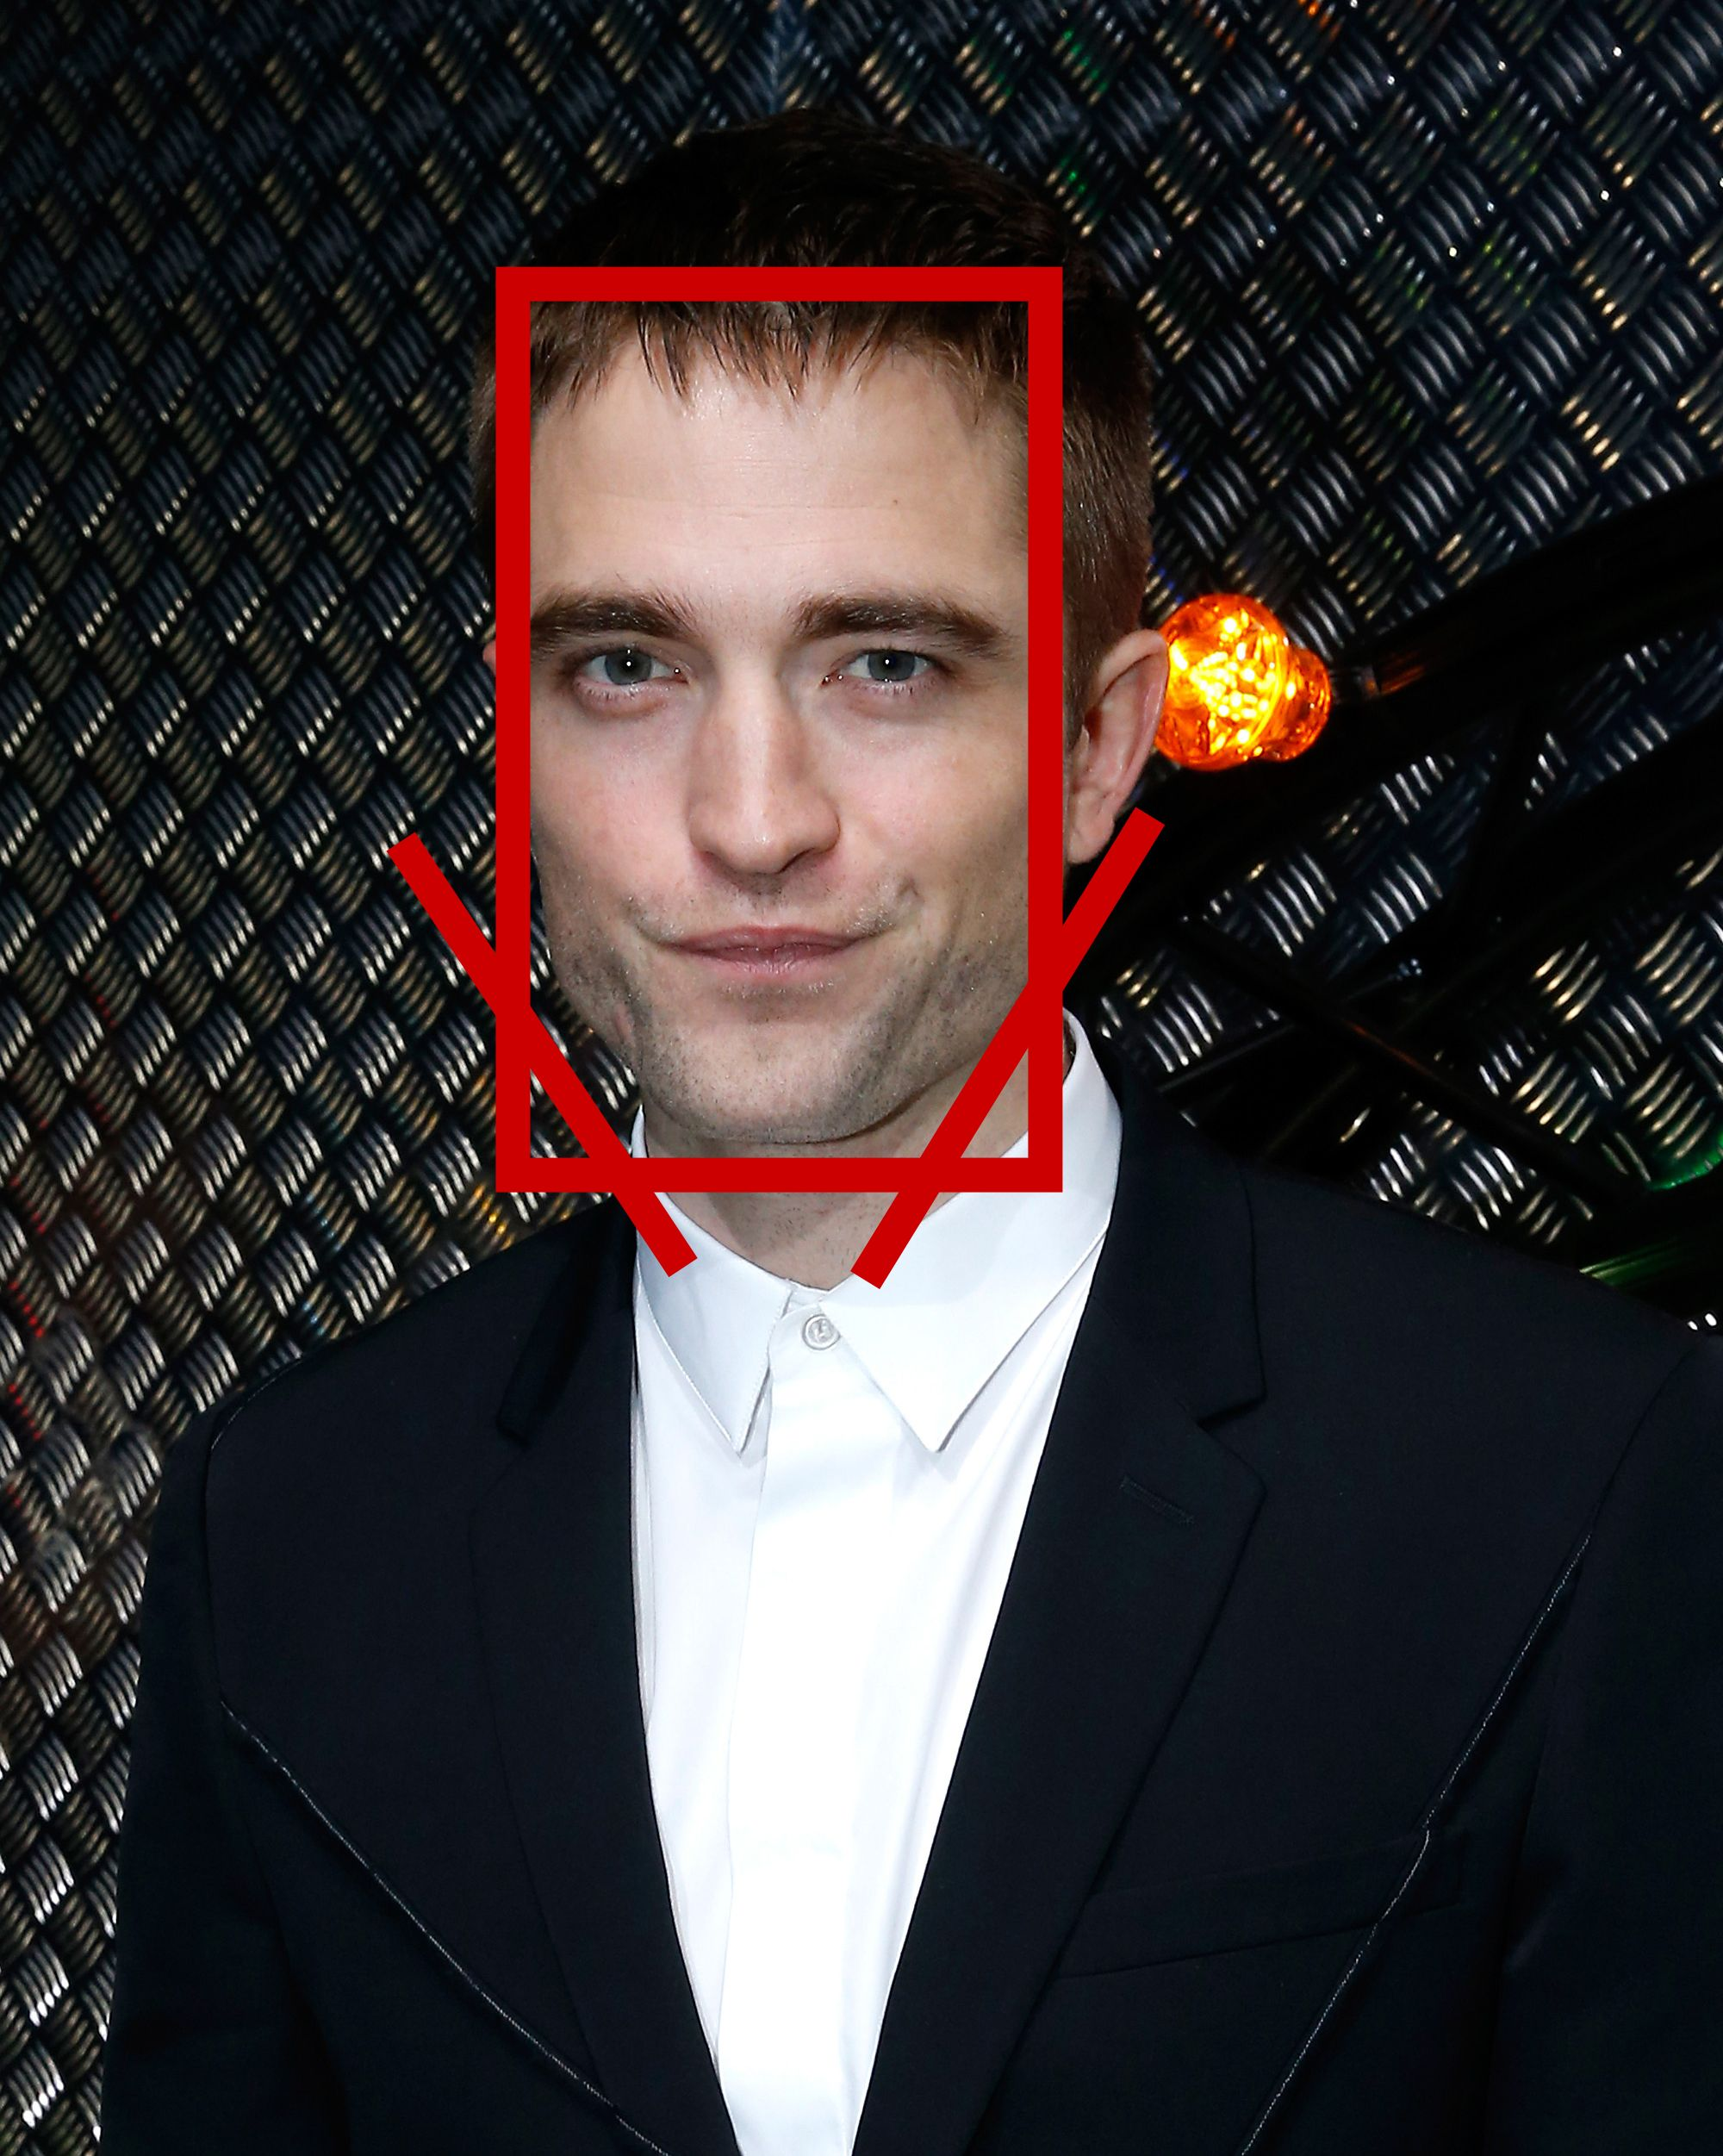 Robert Pattinson, elongated face man, long face, long face man, Robert Pattinson elongated face